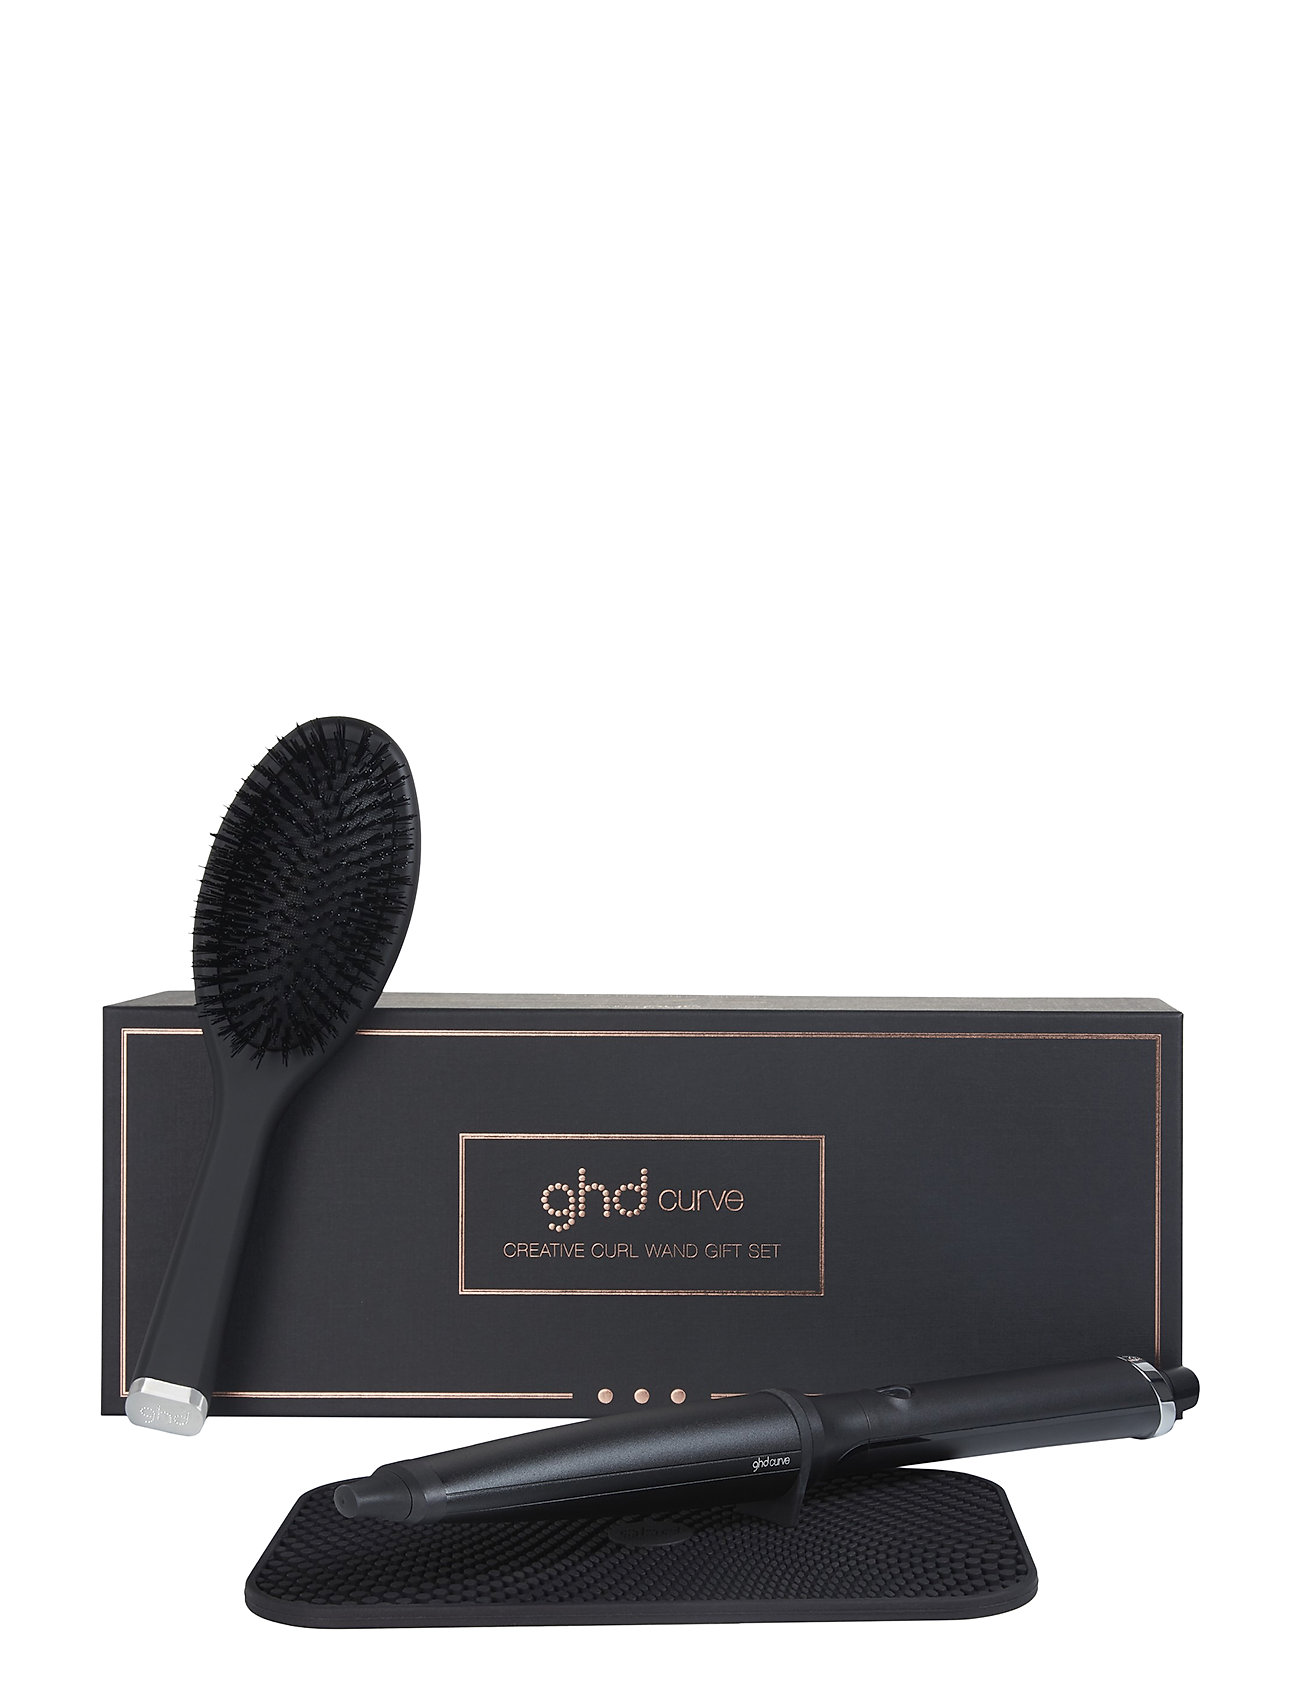 GHD Ghd Creative Curl Wand Gift Set - NO COLOUR